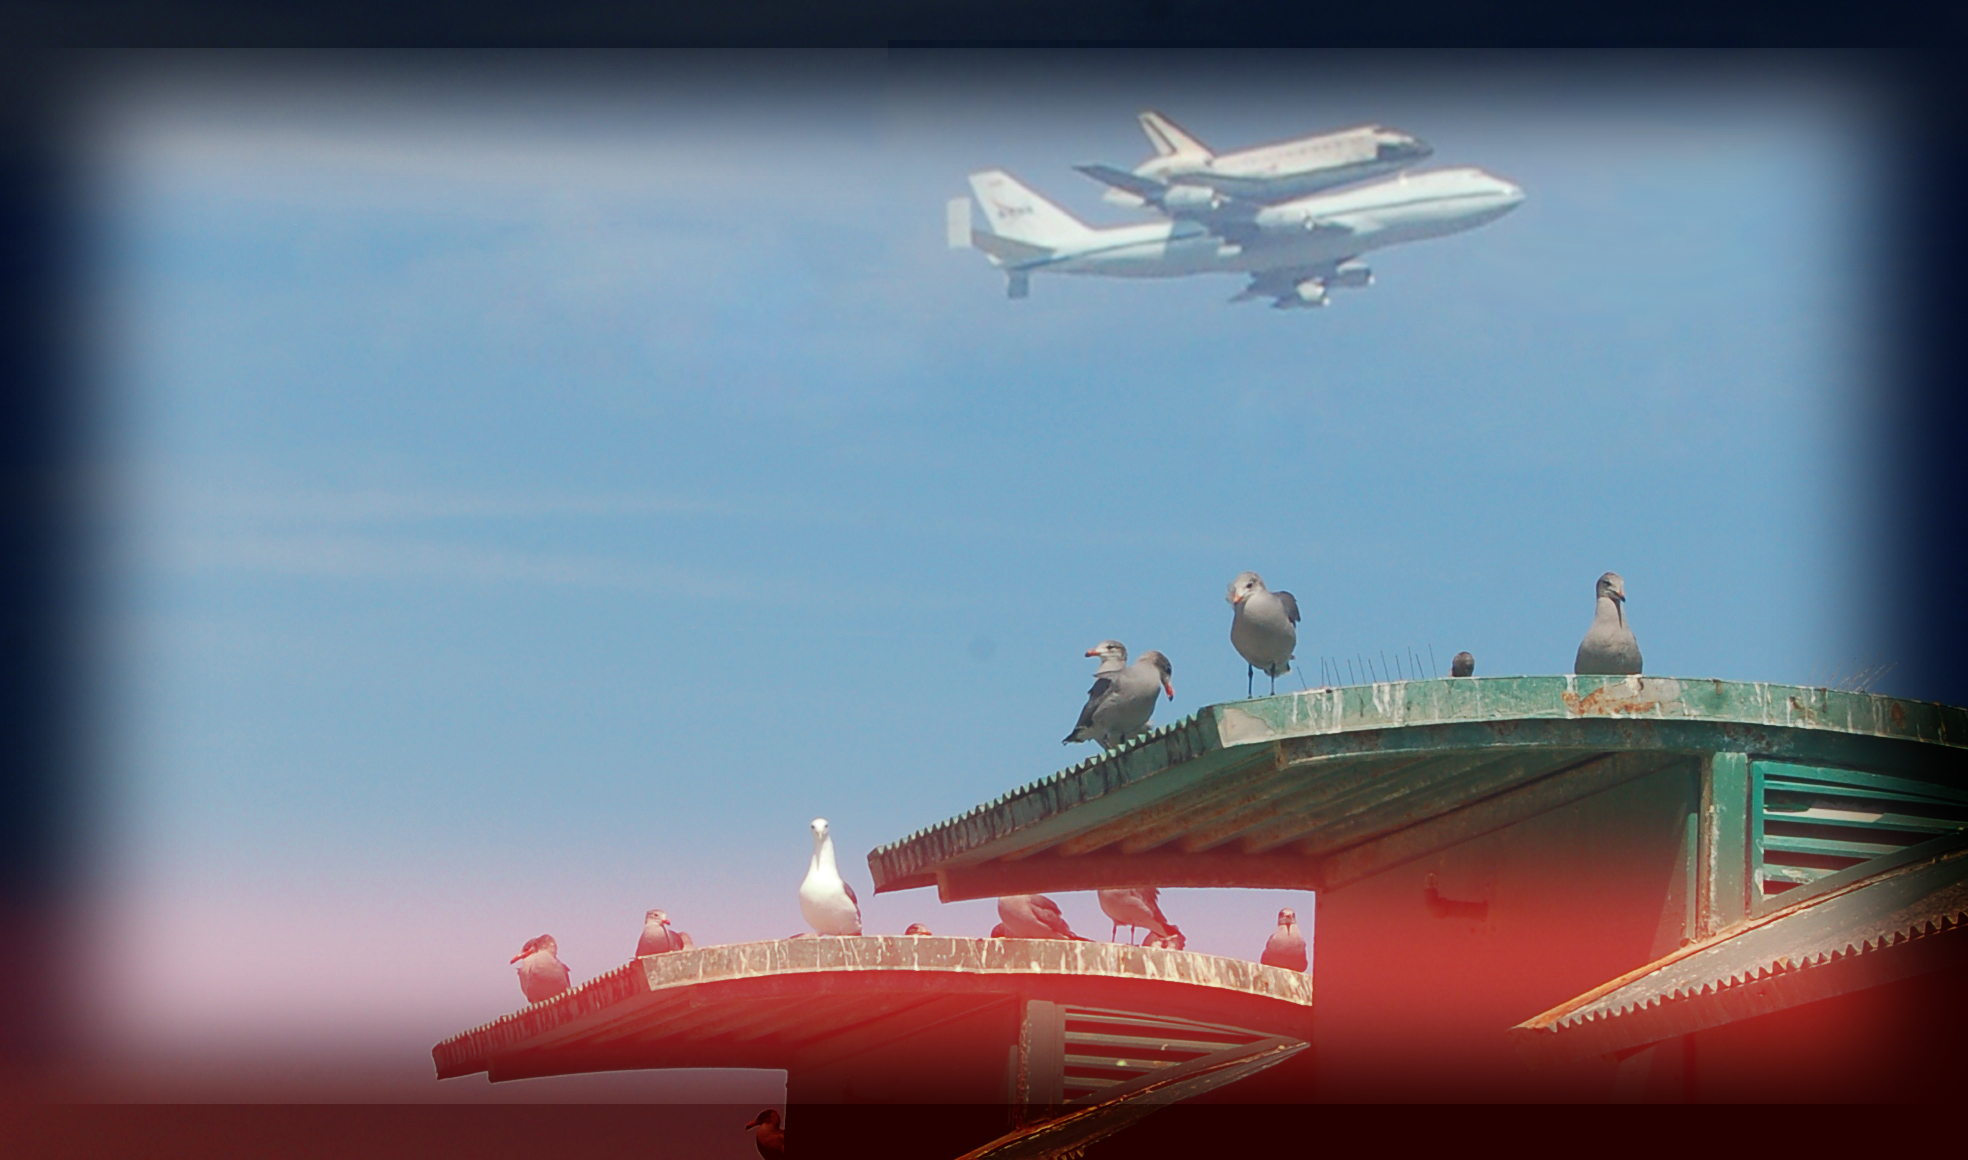 shuttle-endeavor-venice-birds